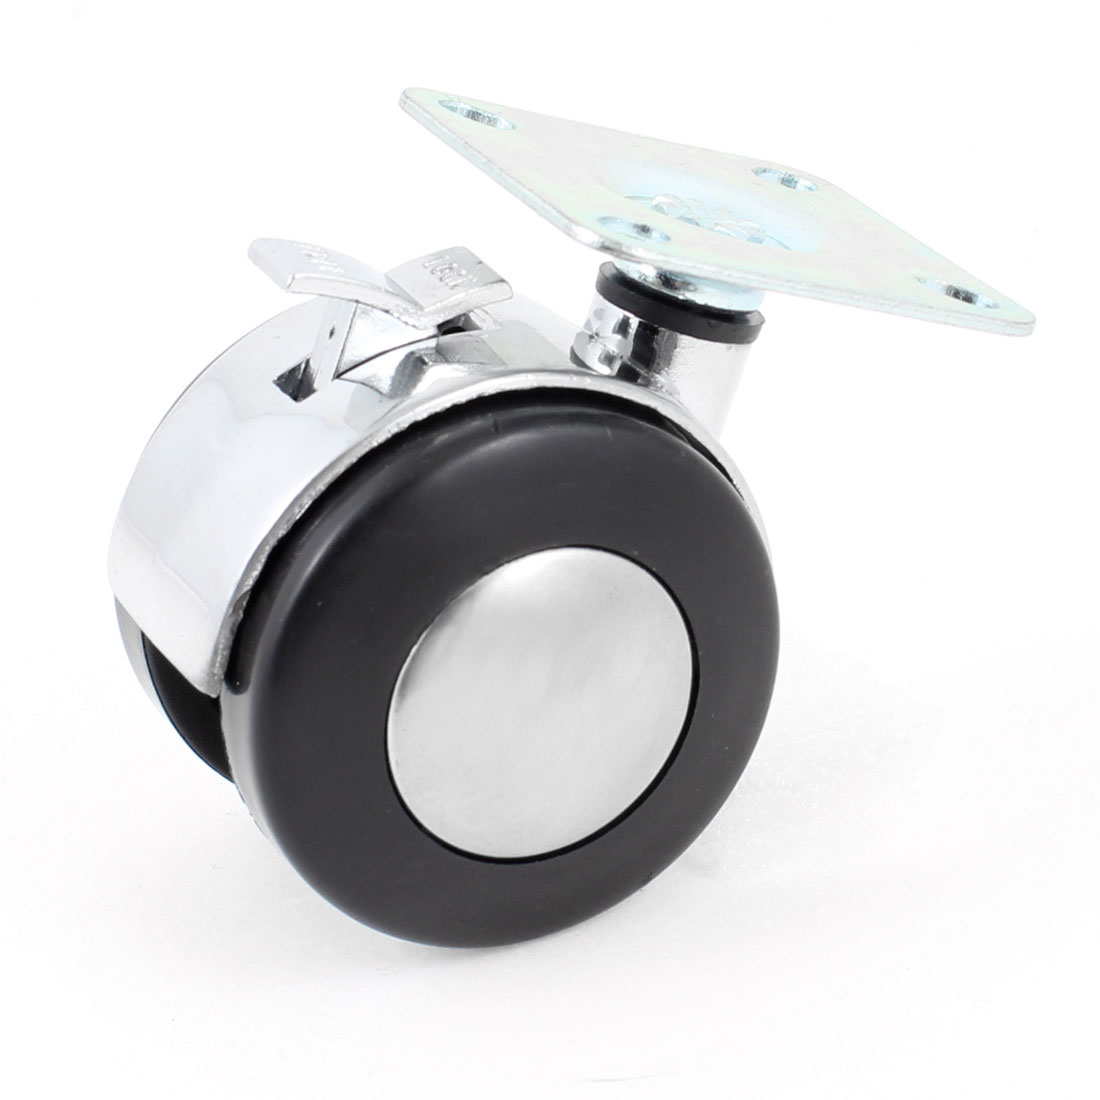 47mm Mounted Plate 50mm Plastic Dual Wheel Rotatable Caster W Brake Lock